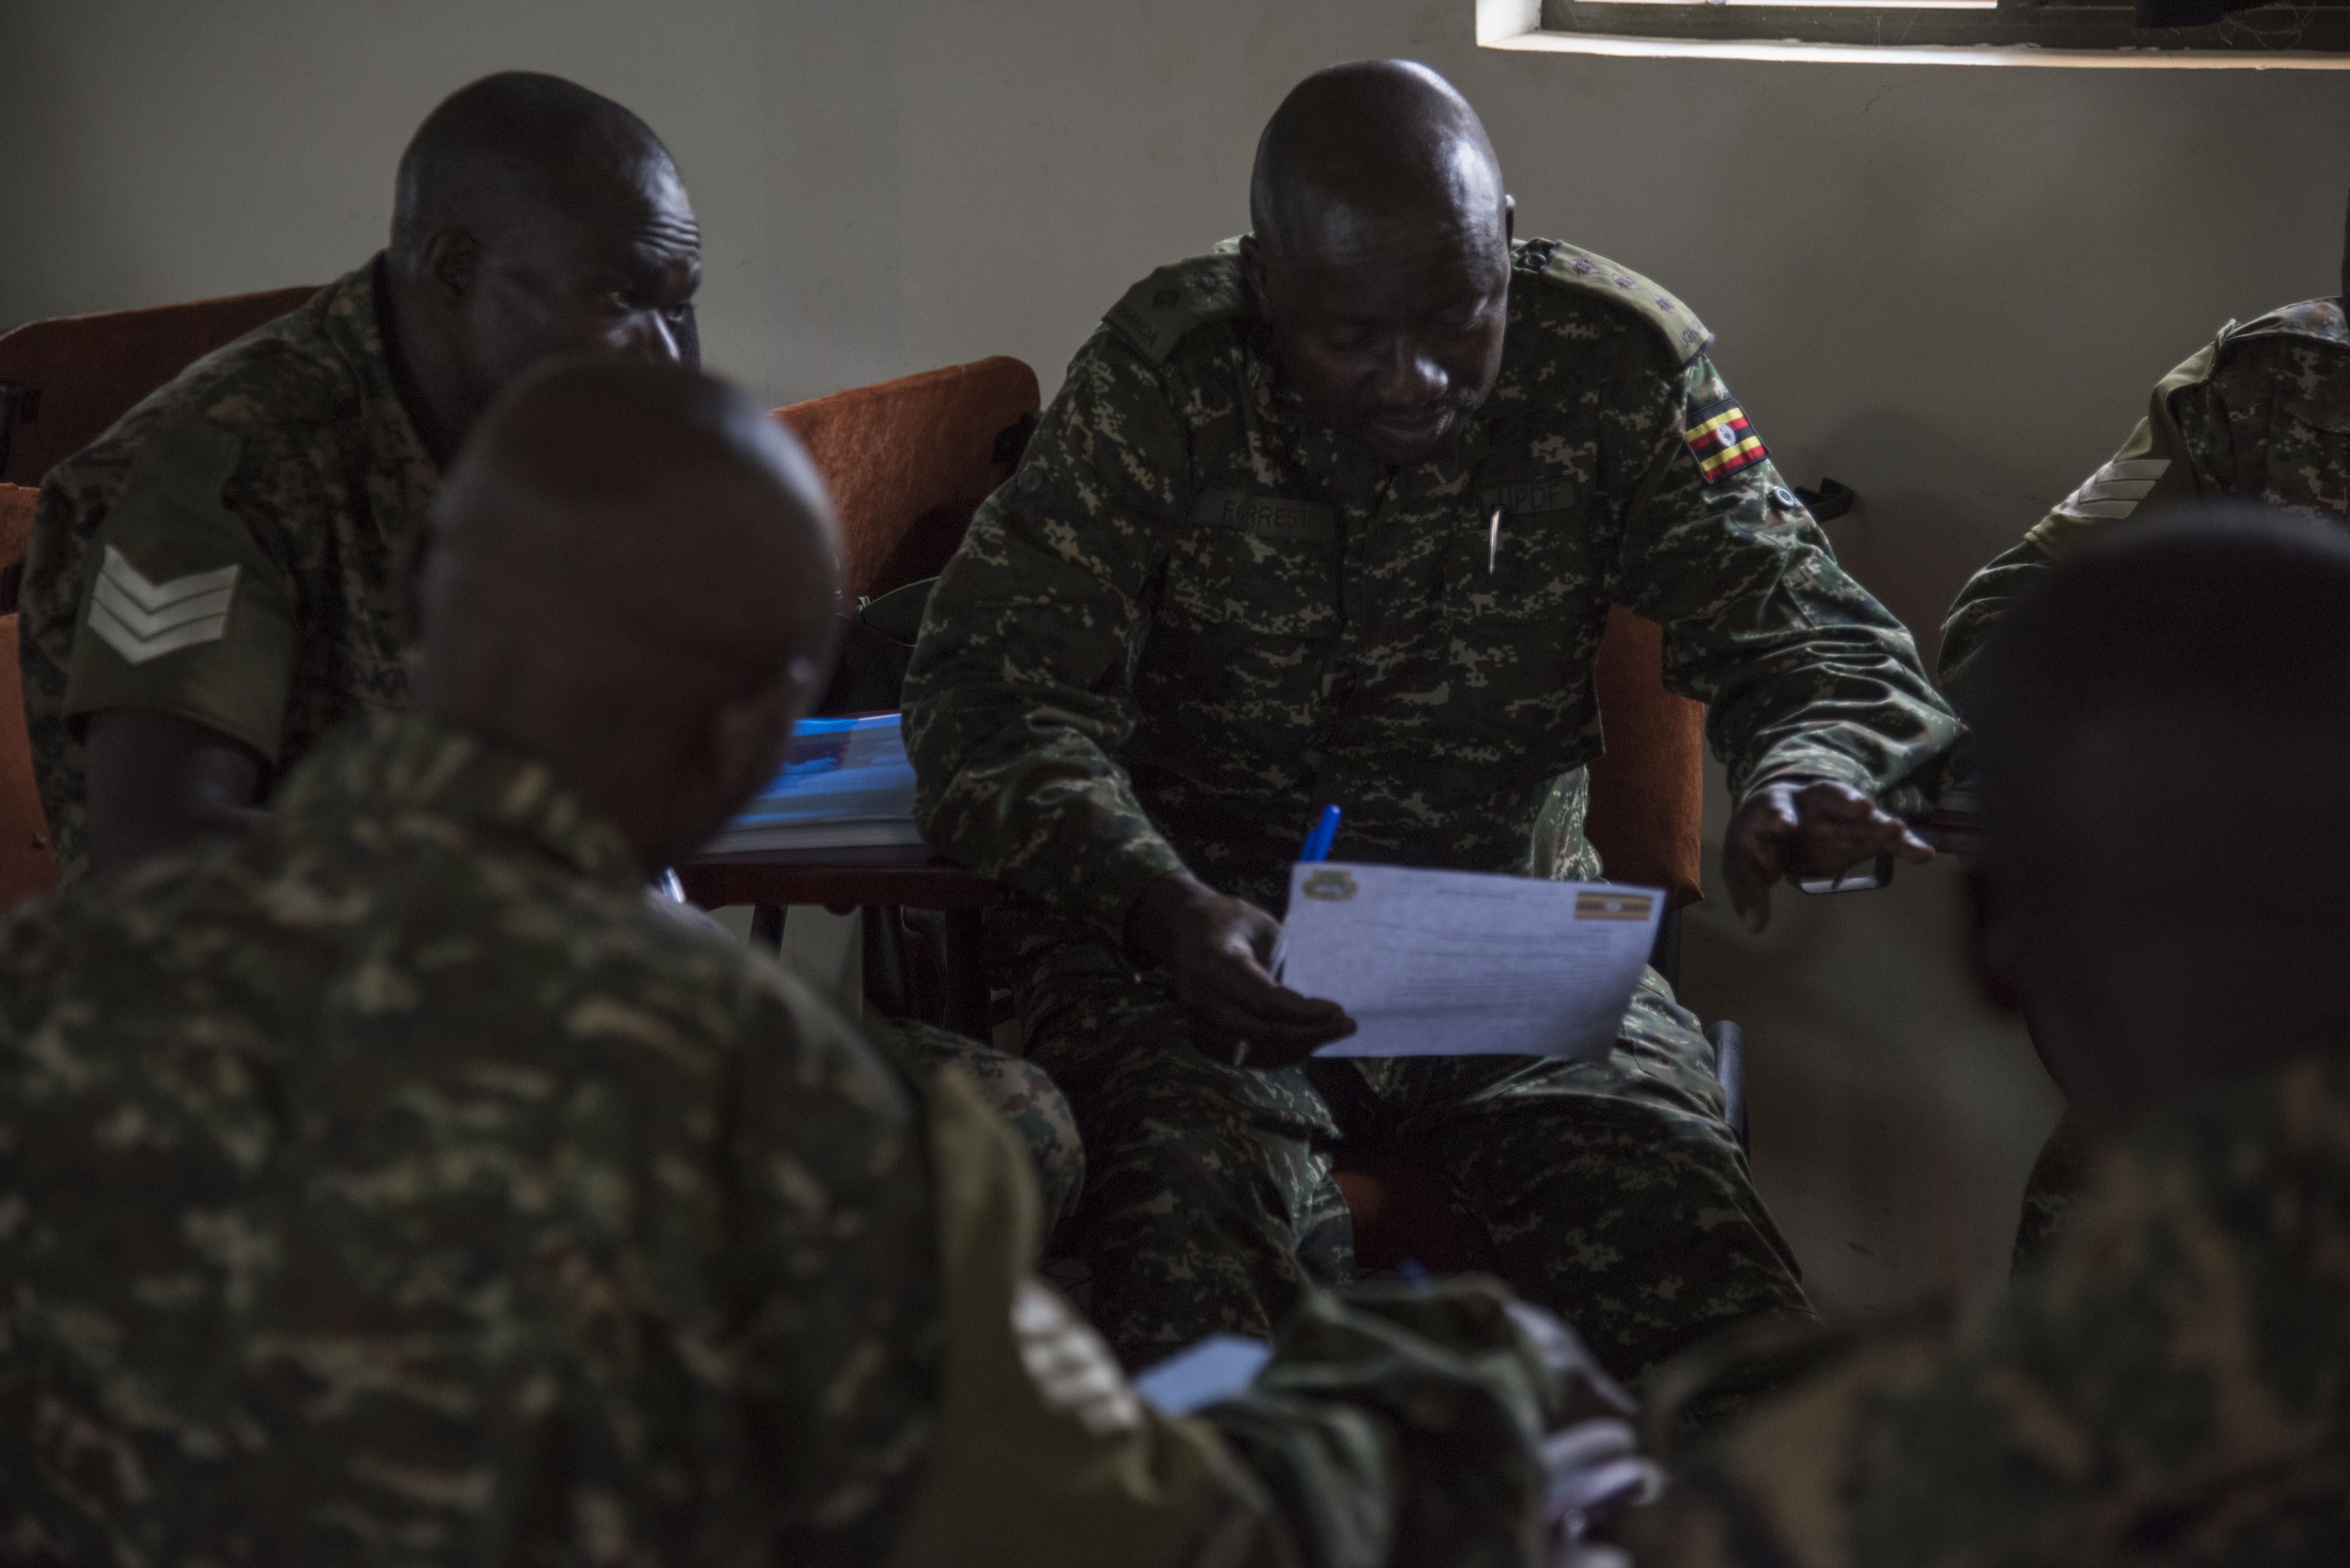 A Uganda People's Defence Force (UPDF) soldier discusses notes with his group during a Civil Affairs (CA) Tactical Company Course, hosted by the 407th Civil Affairs (CA) Battalion, attached to the Combined Joint Task Force - Horn of Africa, at Camp Singo, Uganda, Feb. 08, 2018. CJTF-HOA service members are forward deployed to Camp Singo to advise and assist the UPDF in preparing Ugandan Battle Group 25 for an upcoming deployment in support of the African Union Mission in Somalia (AMISOM). (U.S. Air National Guard photo by Staff Sgt. Allyson L. Manners)